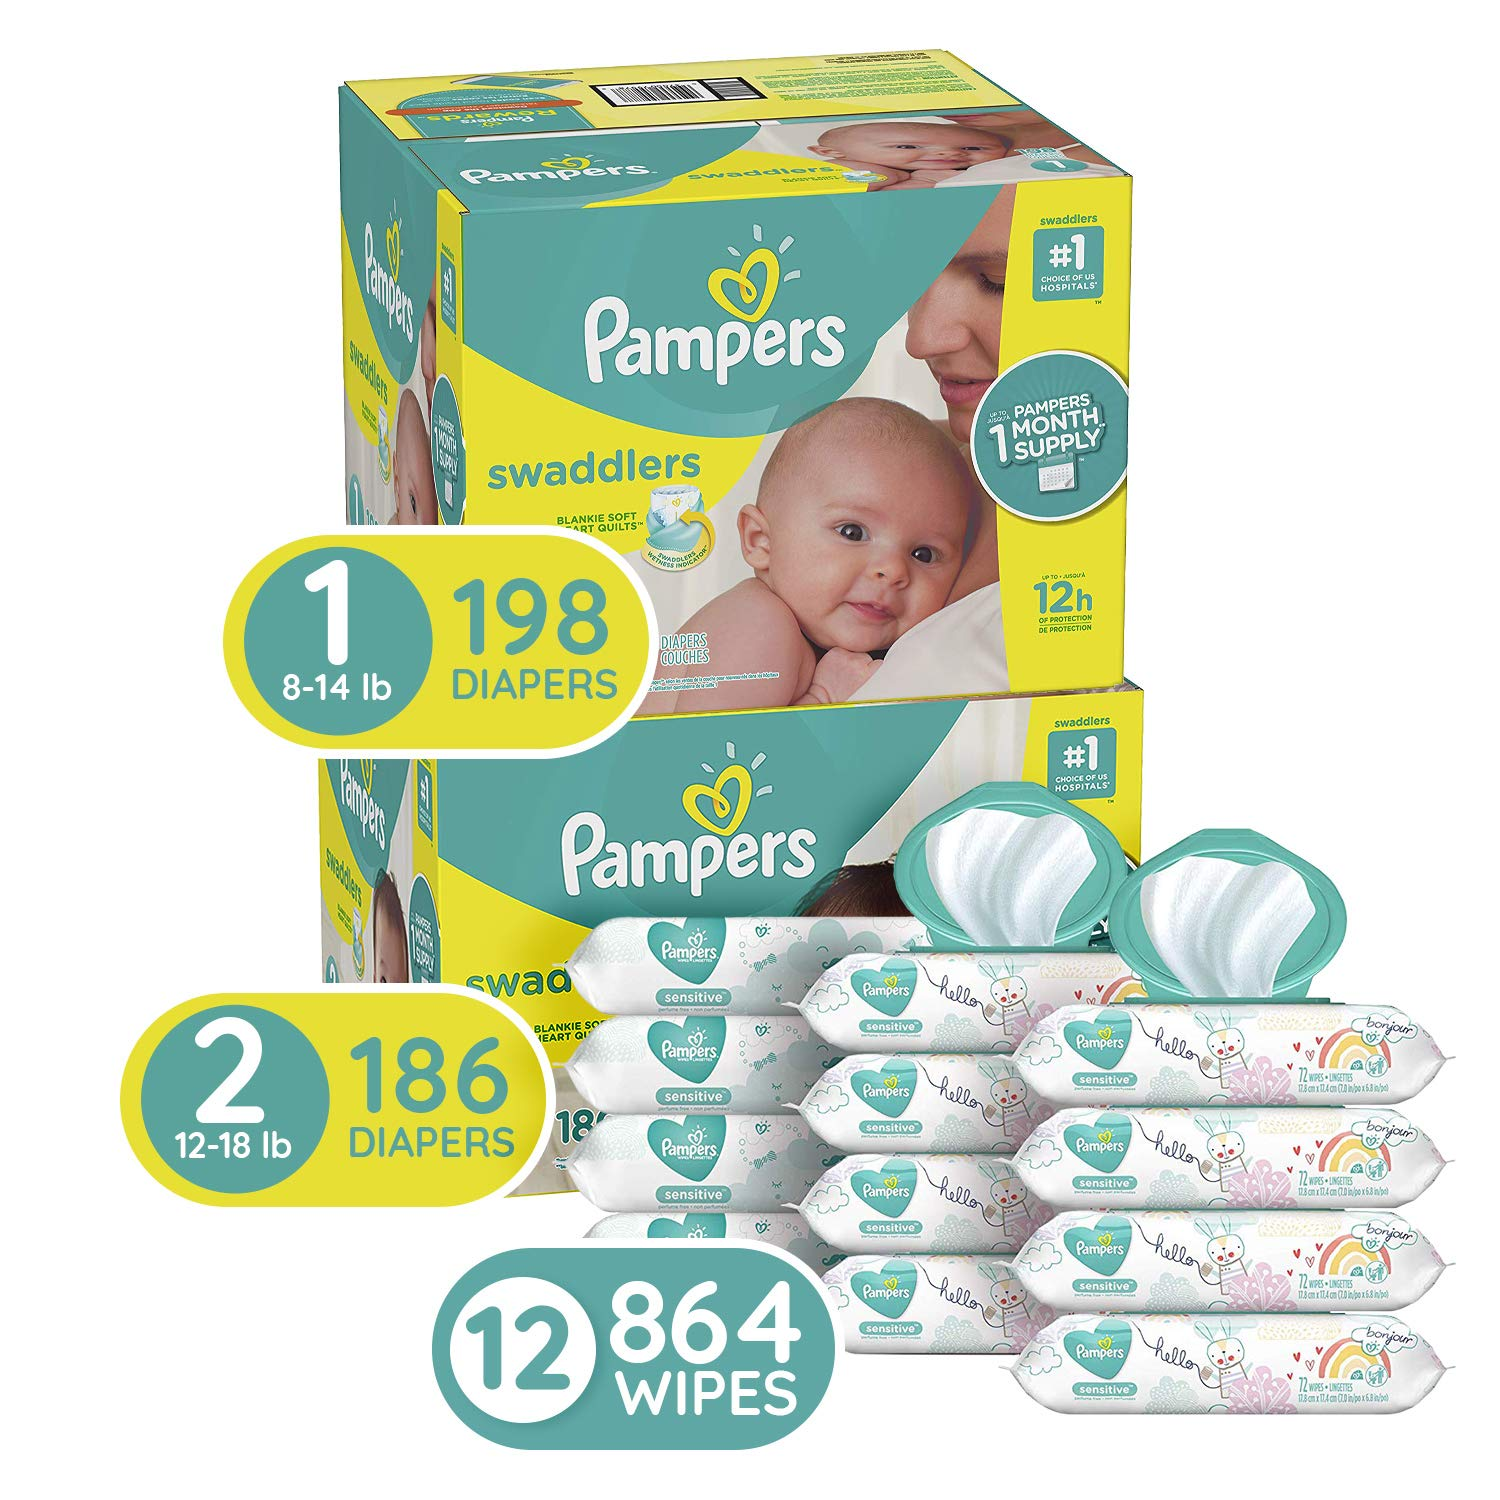 Pampers Baby Diapers and Wipes Starter Kit (2 Month Supply)  - Swaddlers Disposable Baby Diapers Sizes 1 (198 Count) & 2, (186 Count) with Pampers Sensitive Water-Based Baby Wipes, 864 Count by Pampers